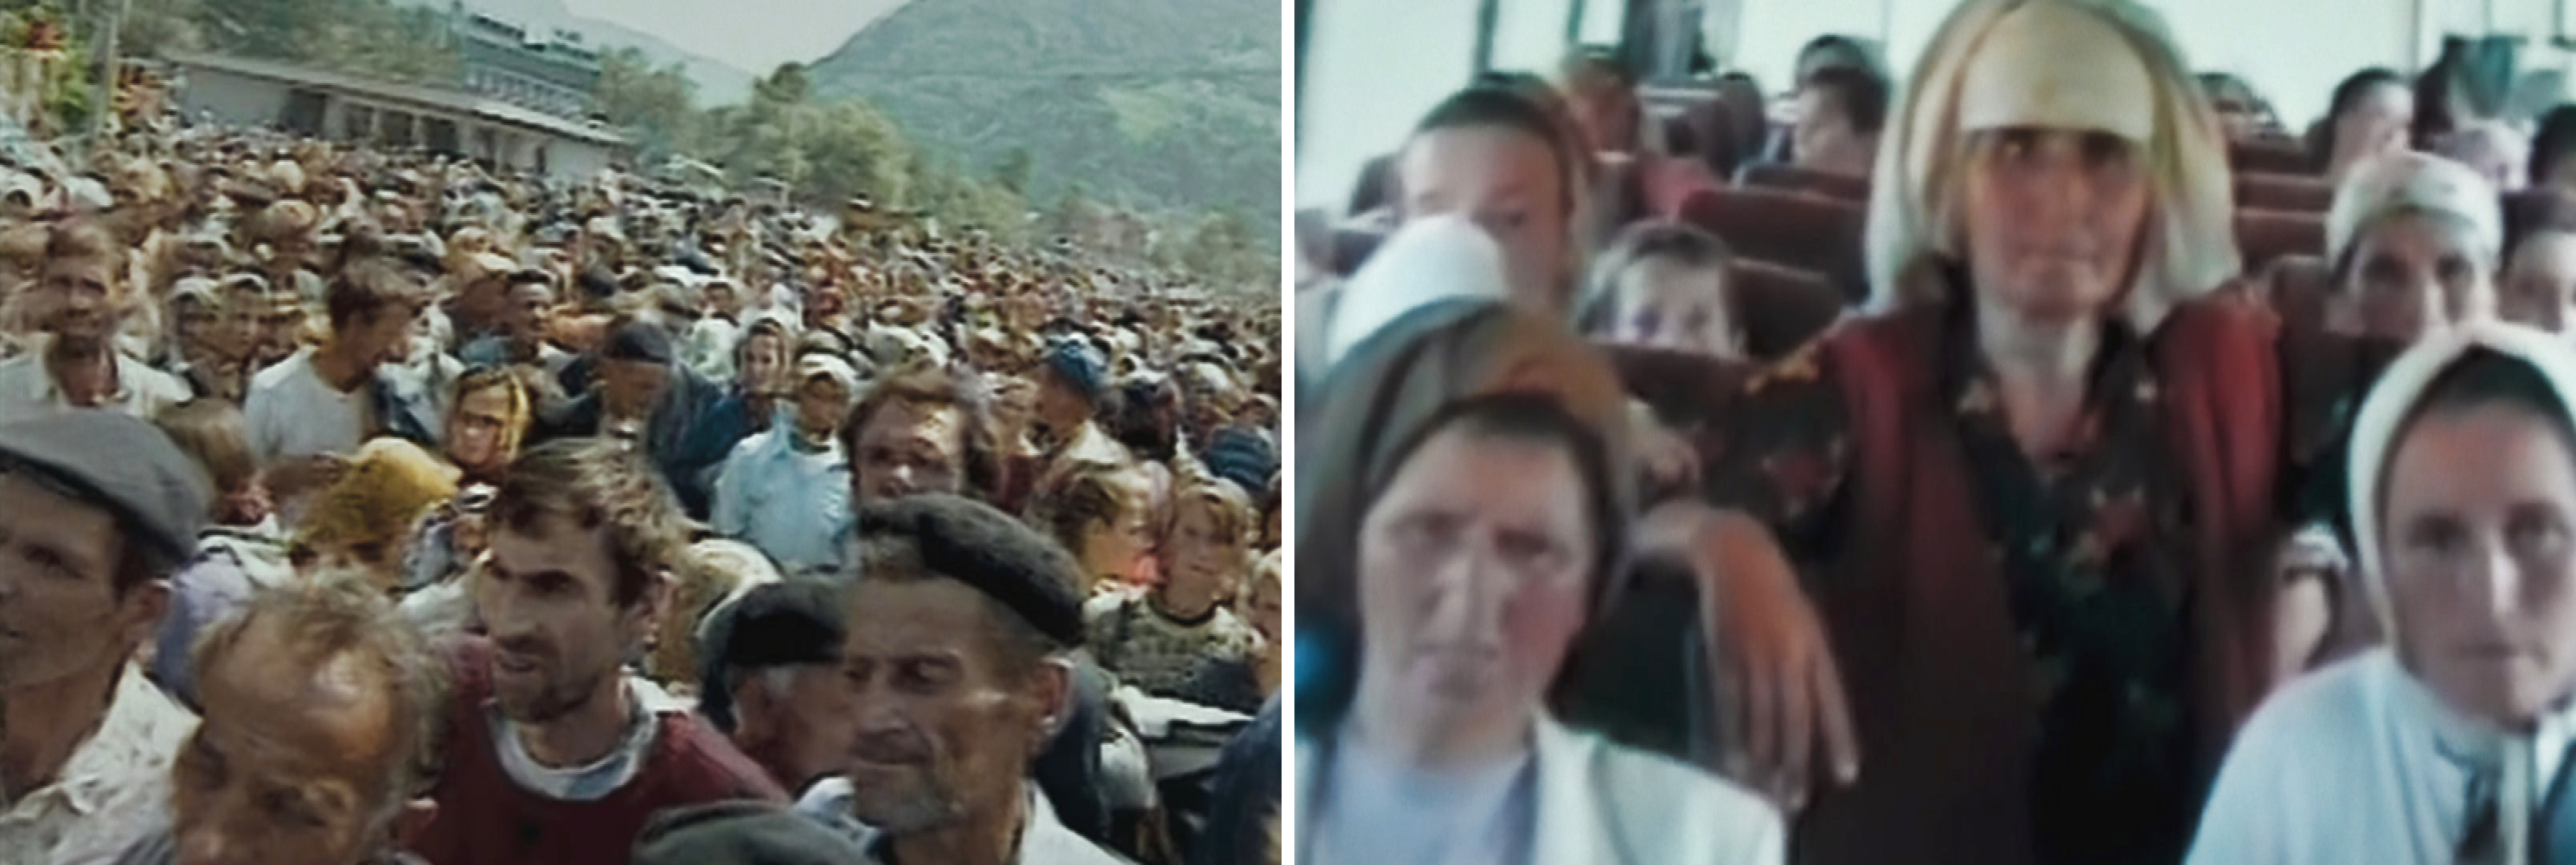 men separated from women in srebrenica enclave